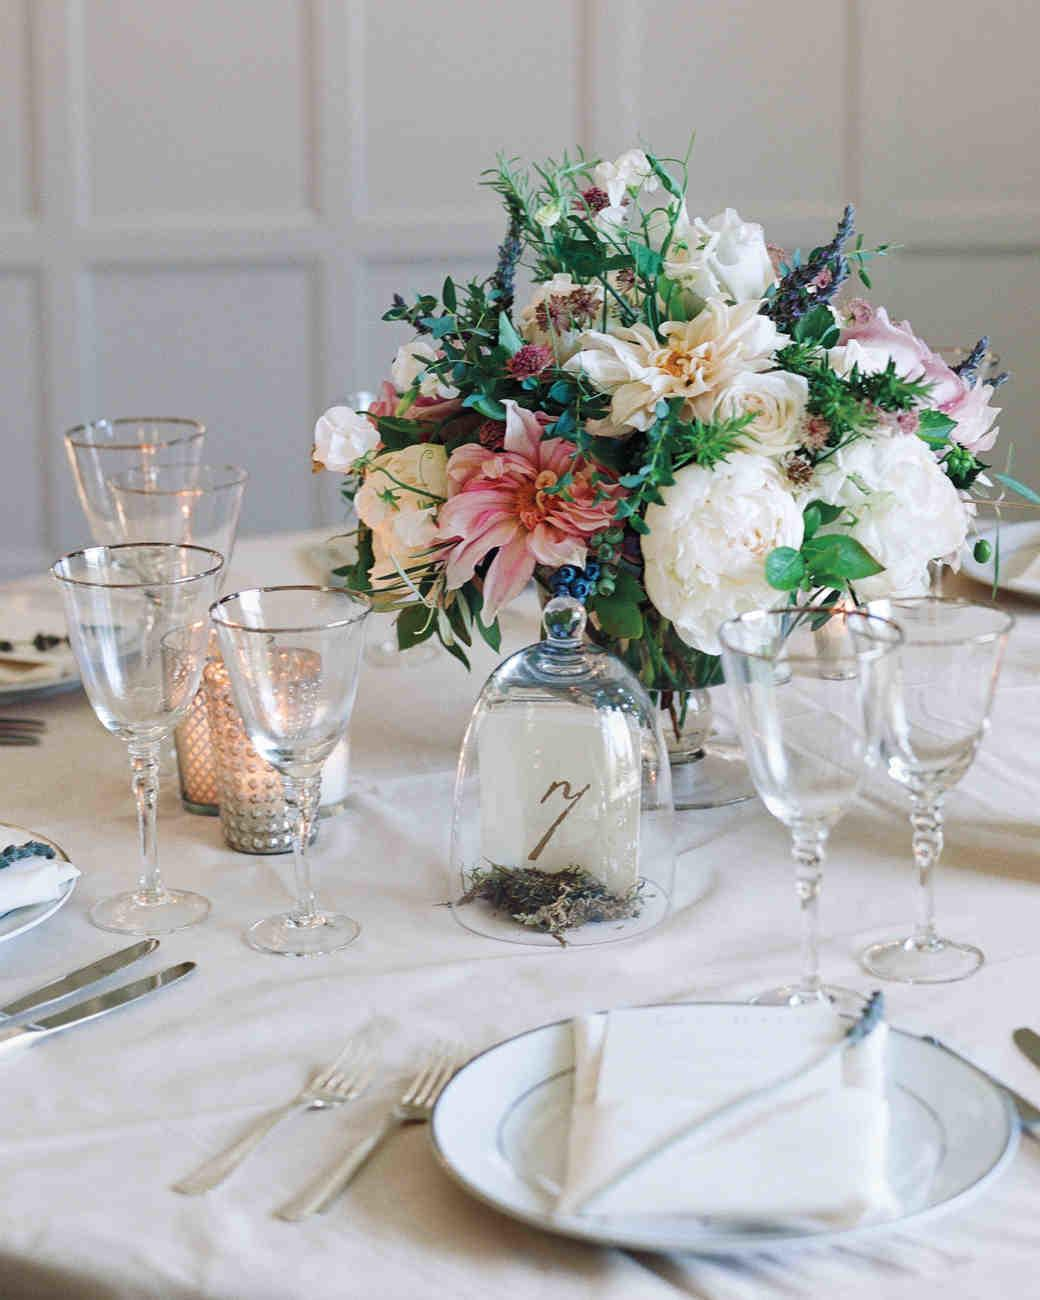 Lovely Elegant Tables Settings Wedding Centerpieces